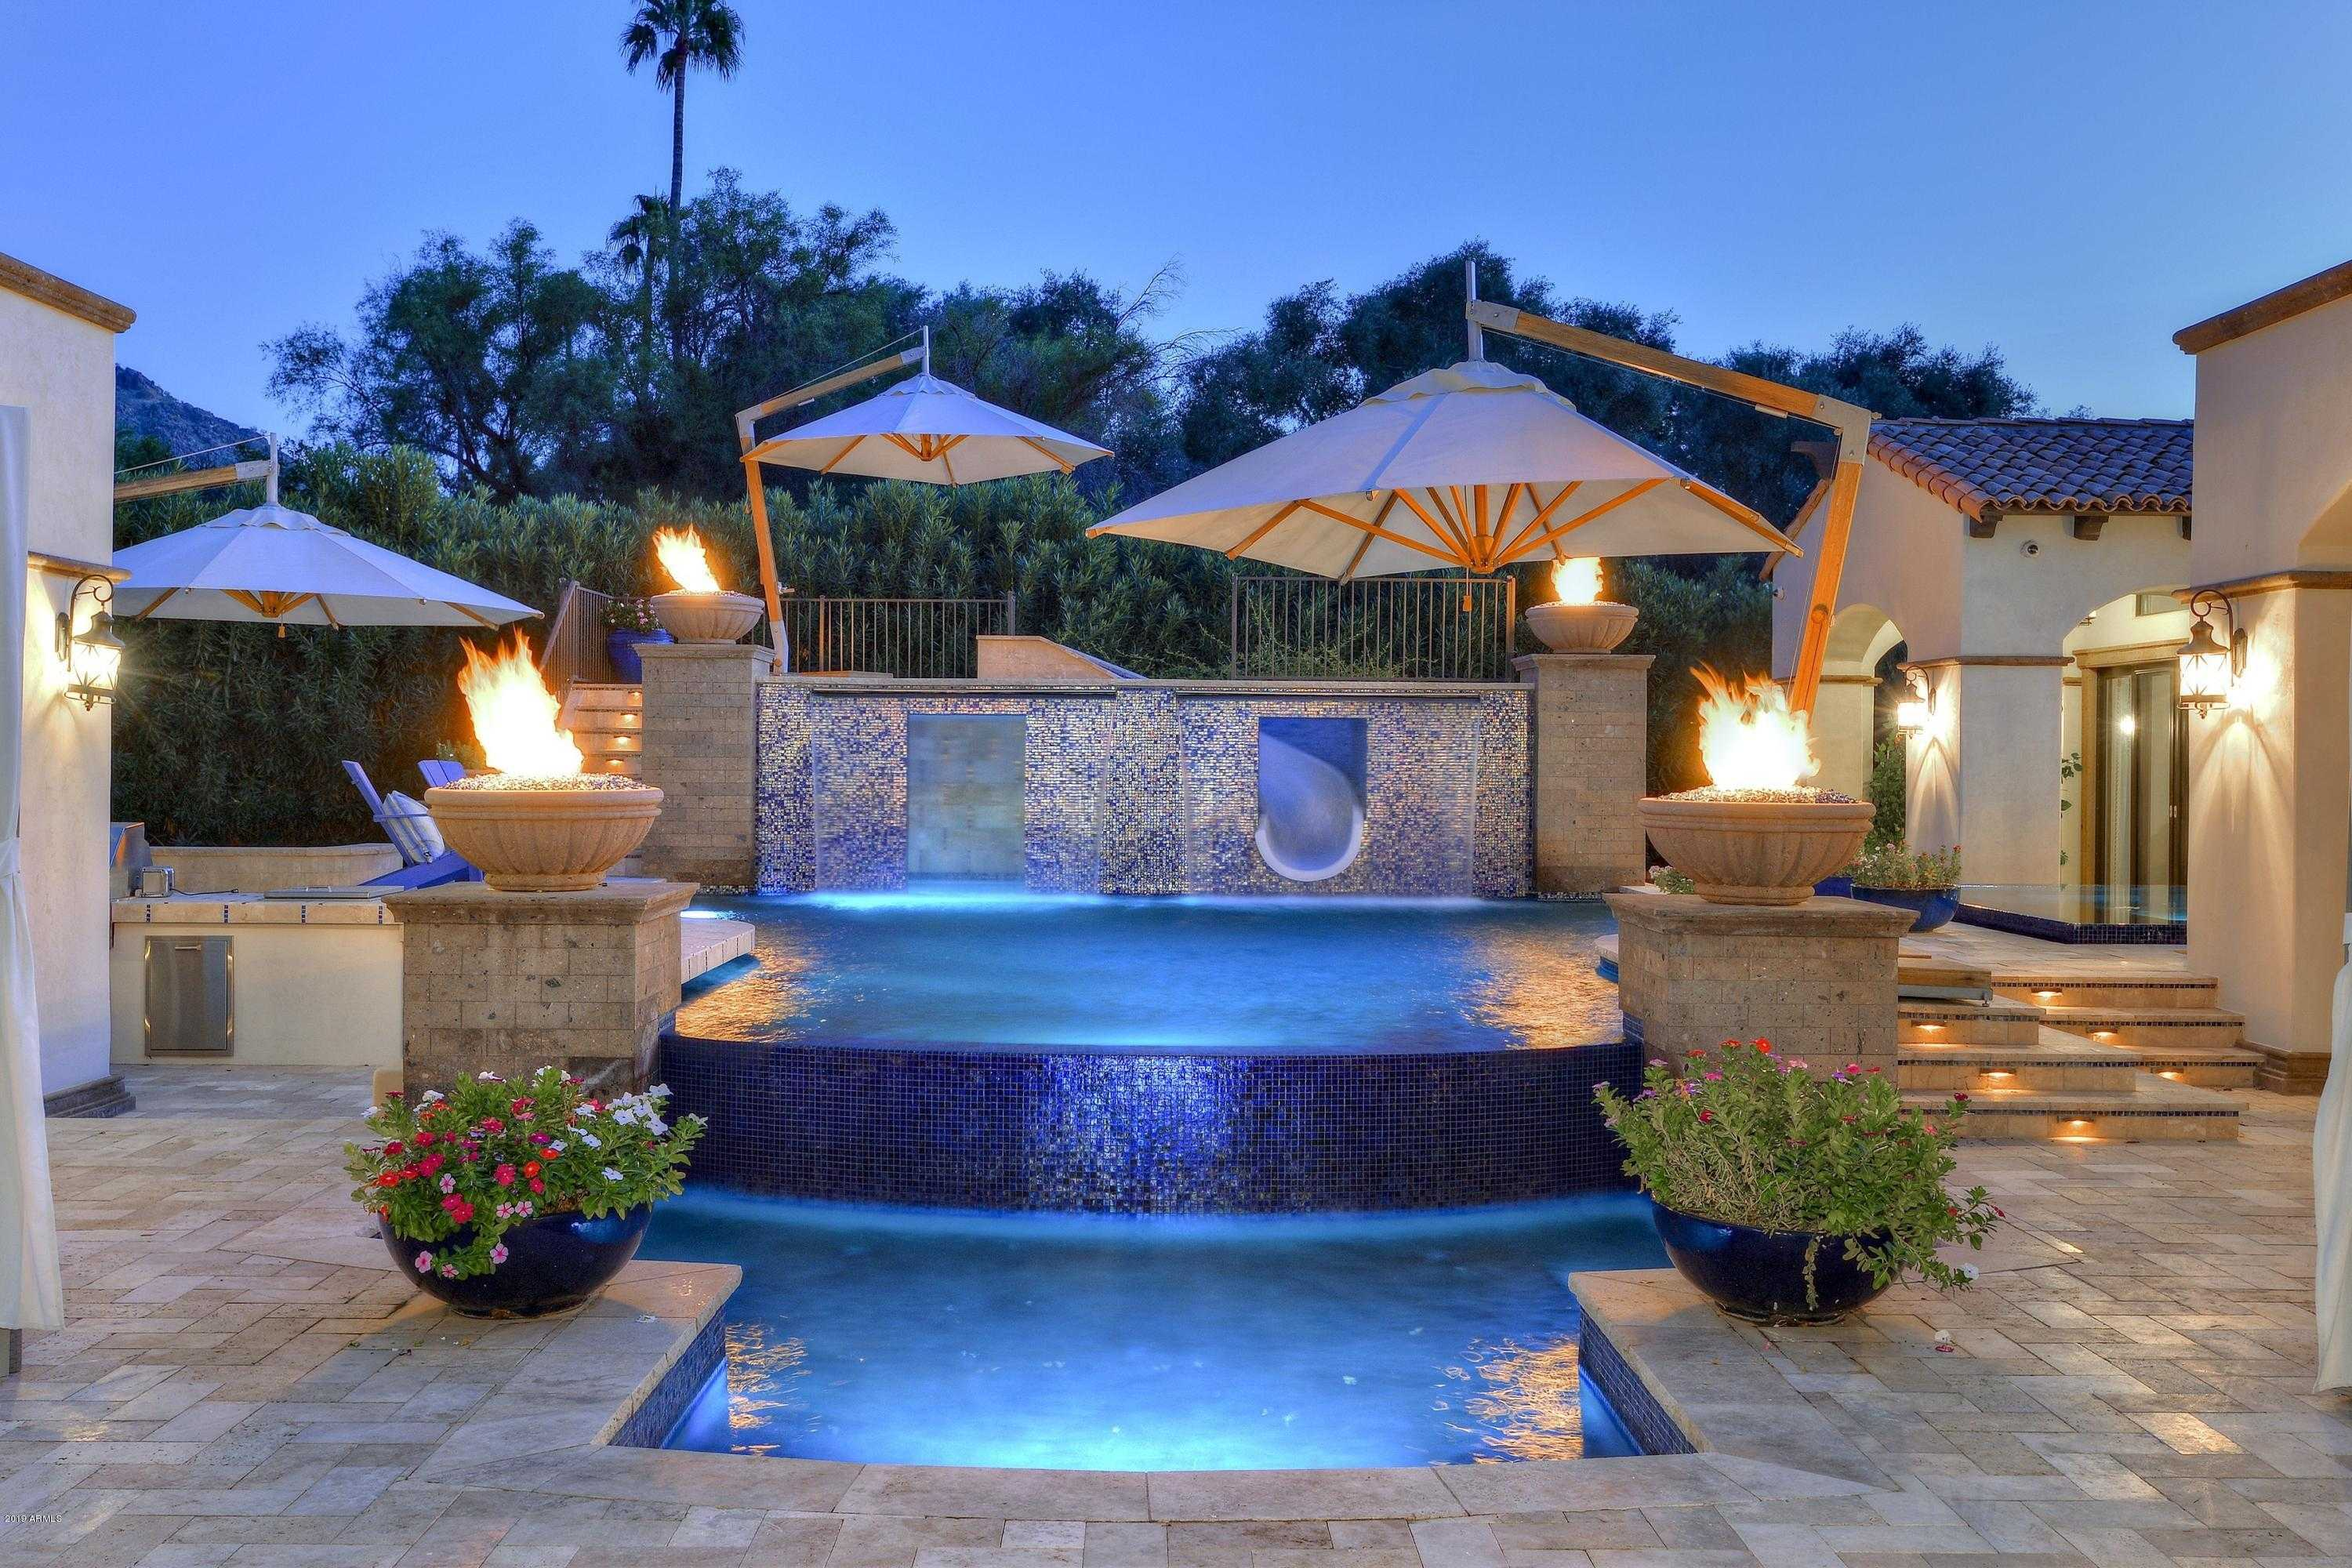 $3,195,000 - 7Br/7Ba - Home for Sale in Lot 16, Valley View Estates, Mcr 013128, Paradise Valley